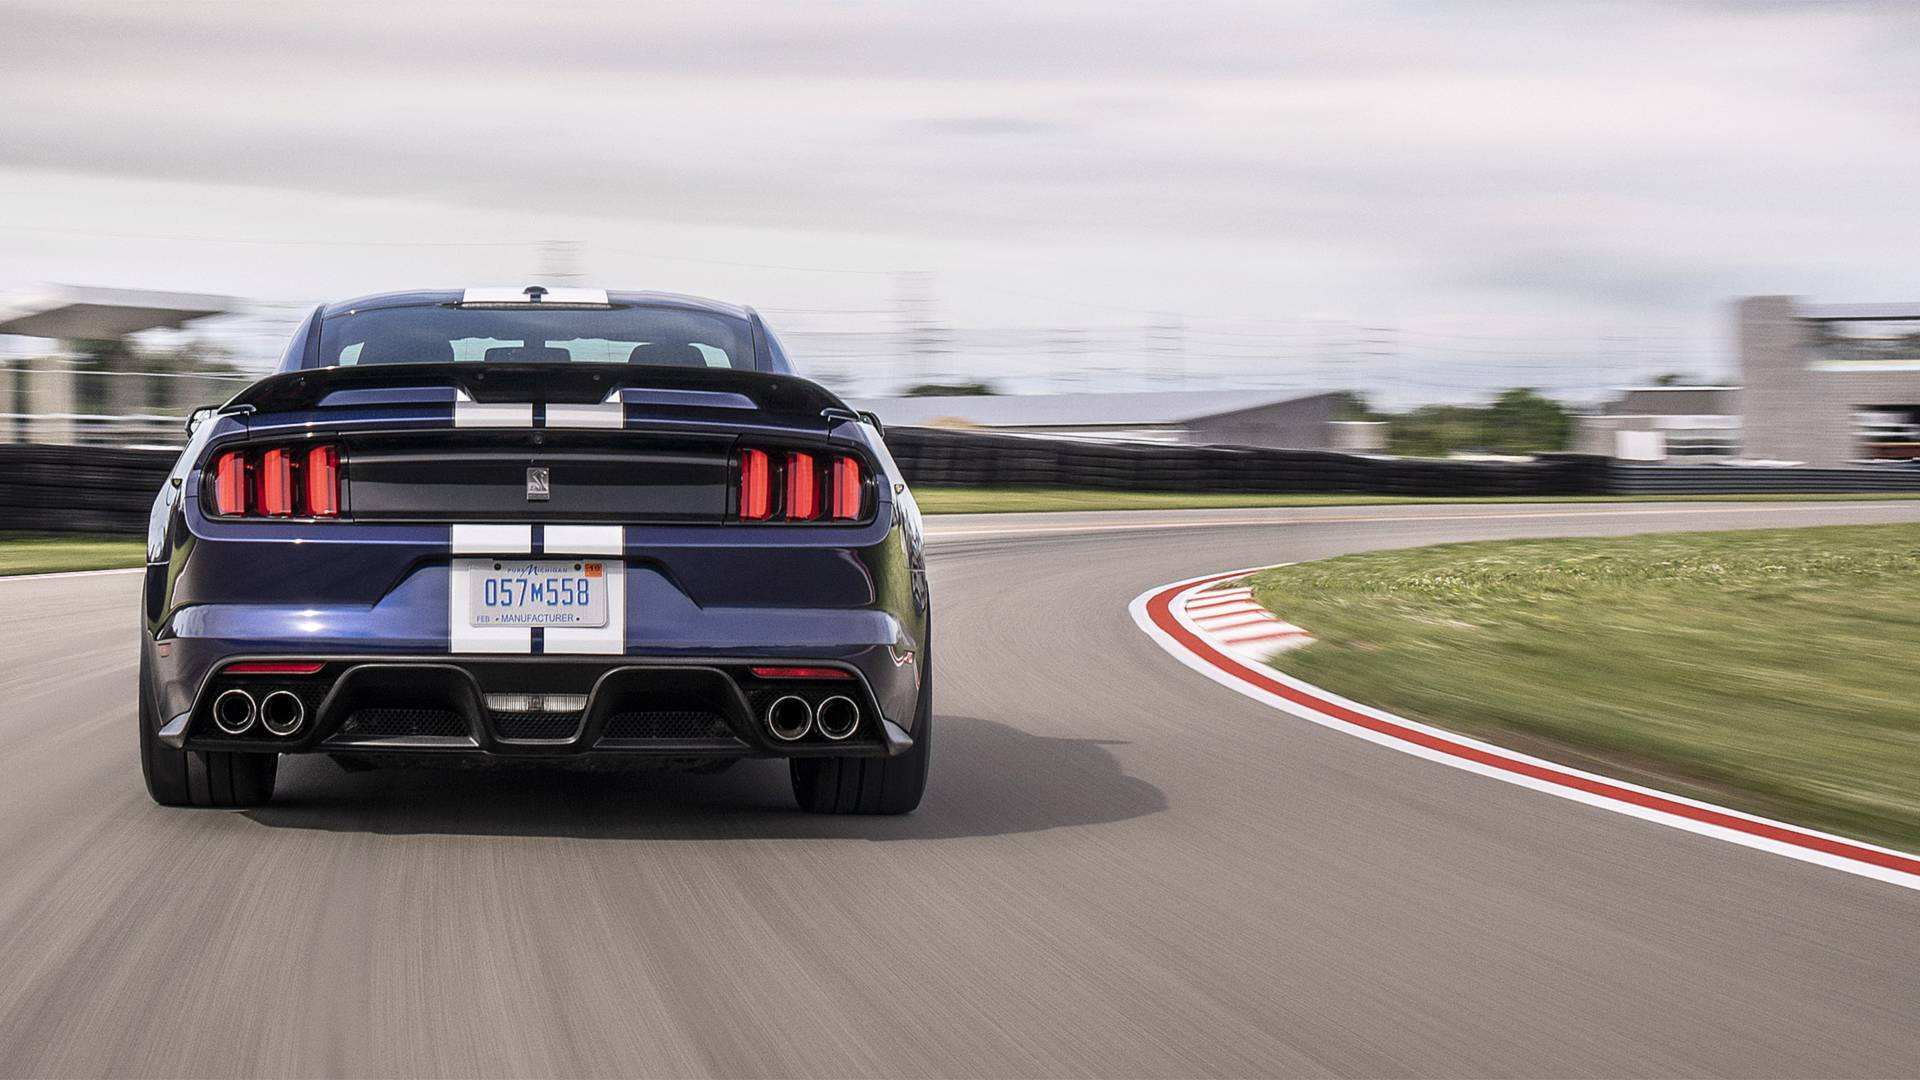 86 Best Review 2019 Ford Mustang Gt350 Performance and New Engine by 2019 Ford Mustang Gt350